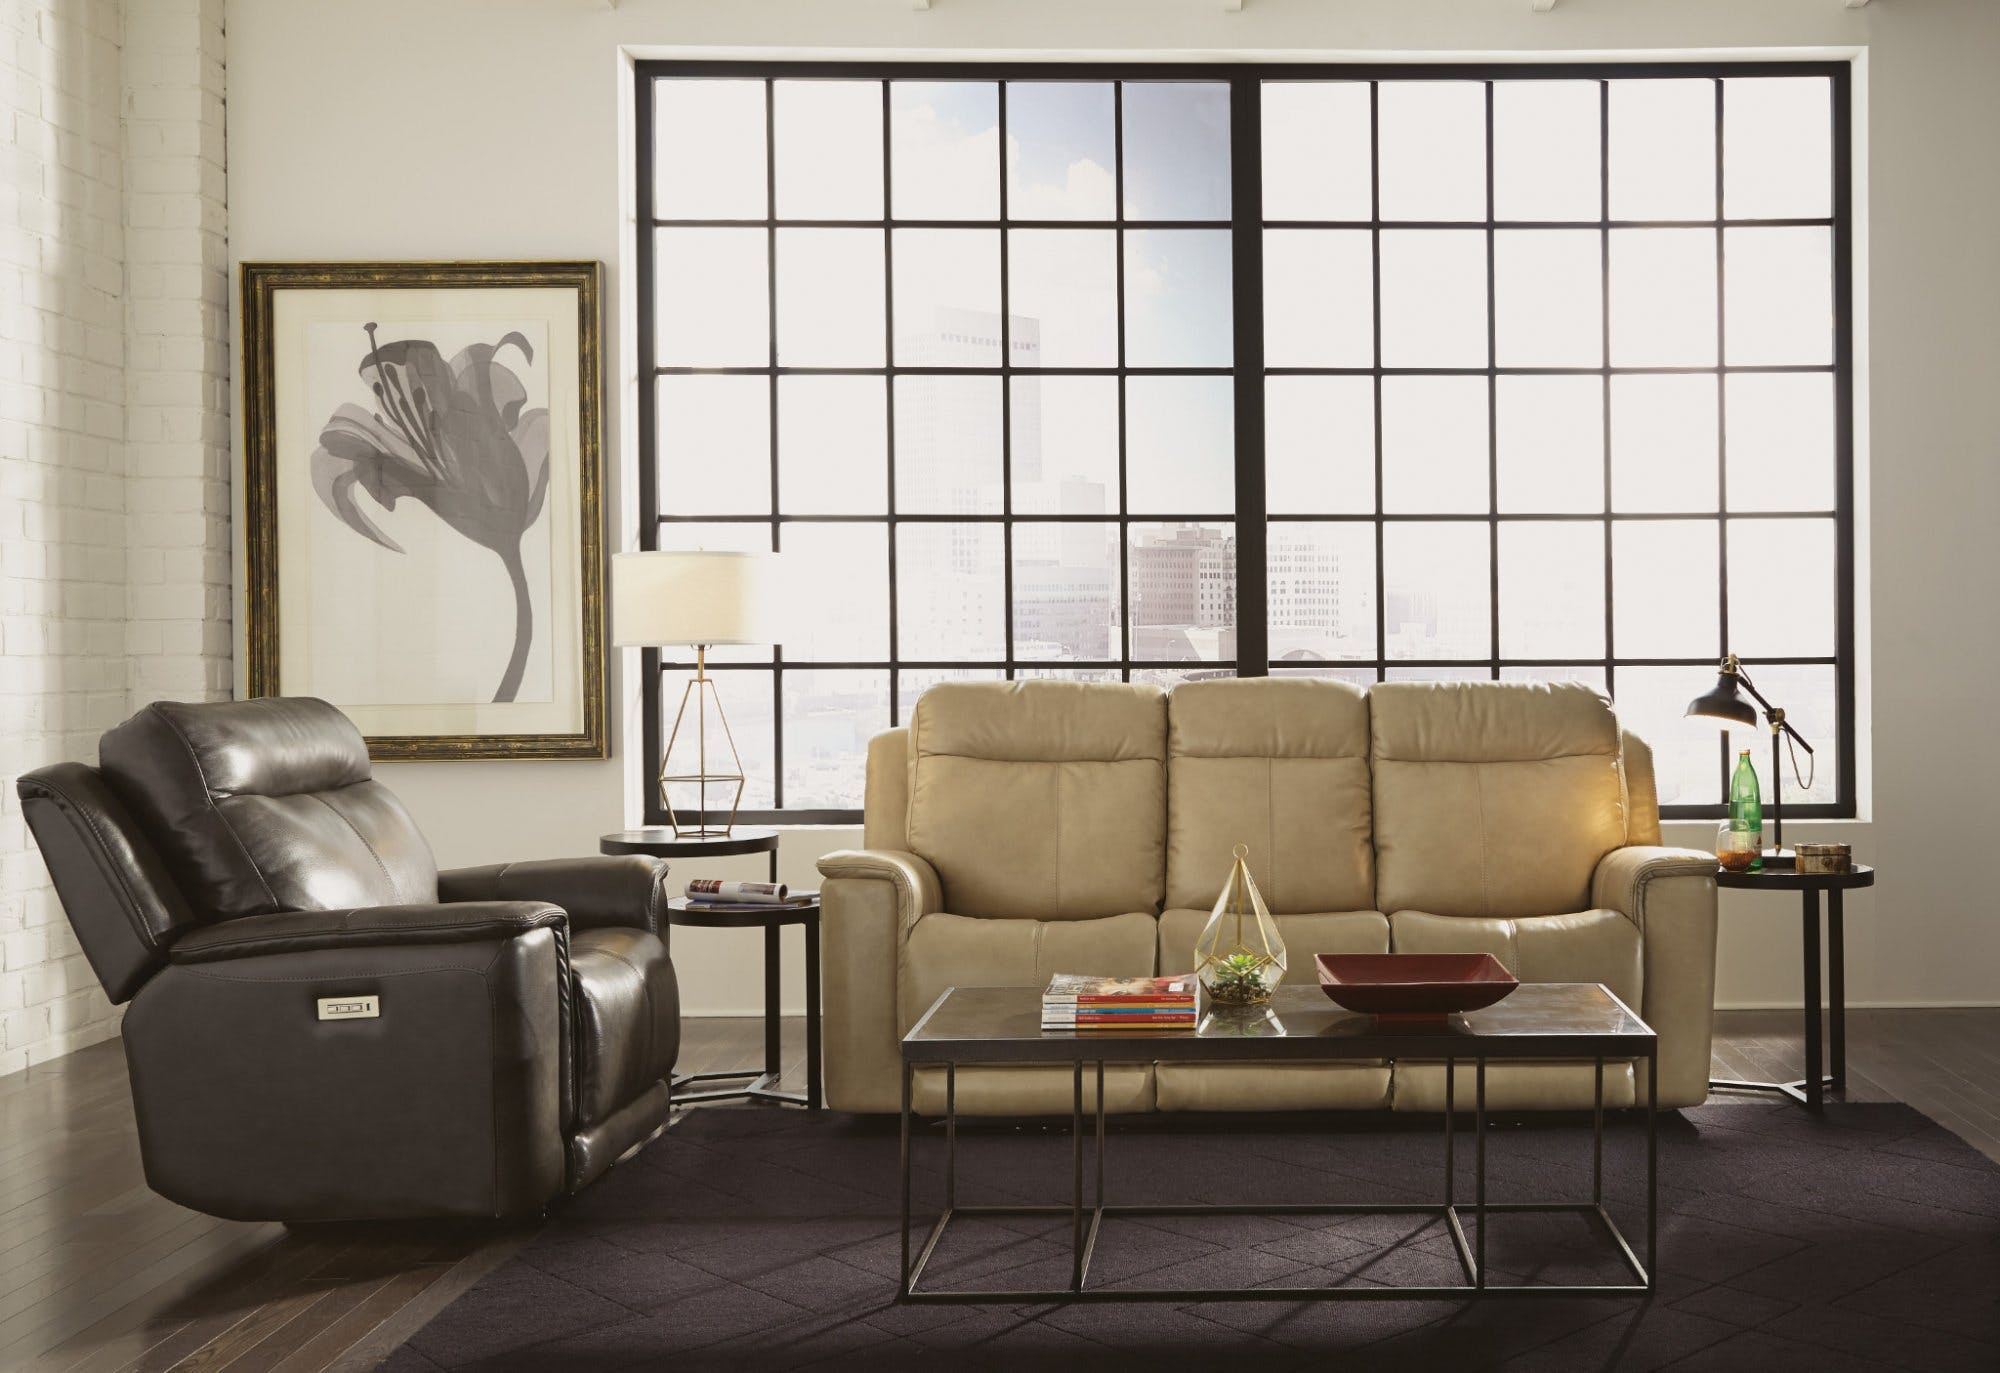 Best Prices on Leather Furniture 2019